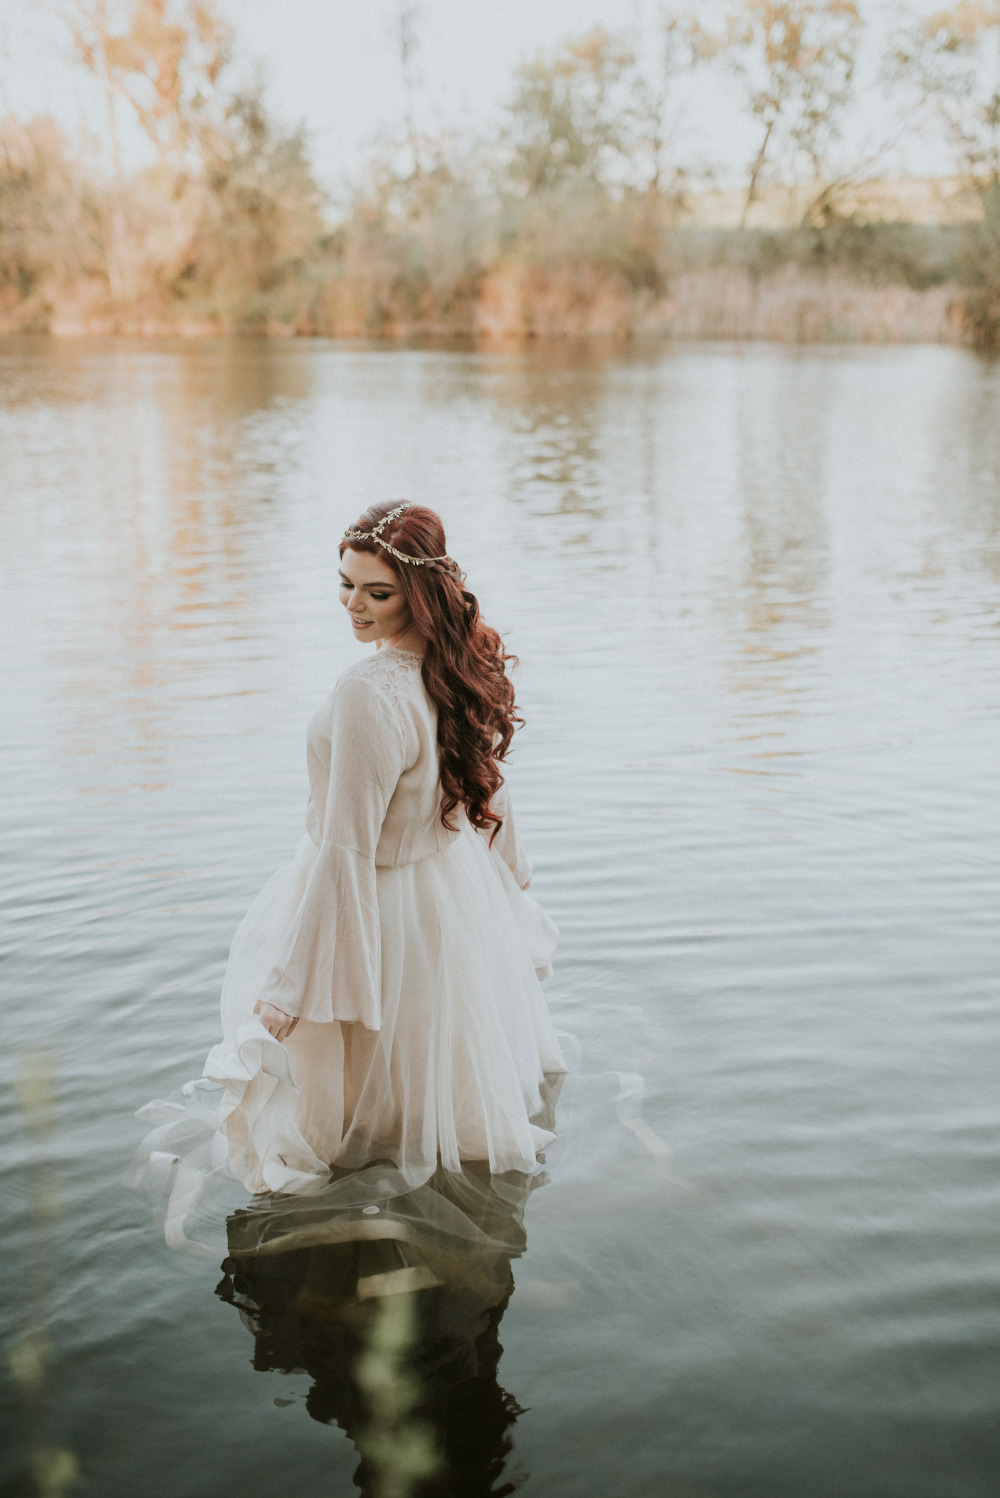 beautiful wedding dress photo in the river